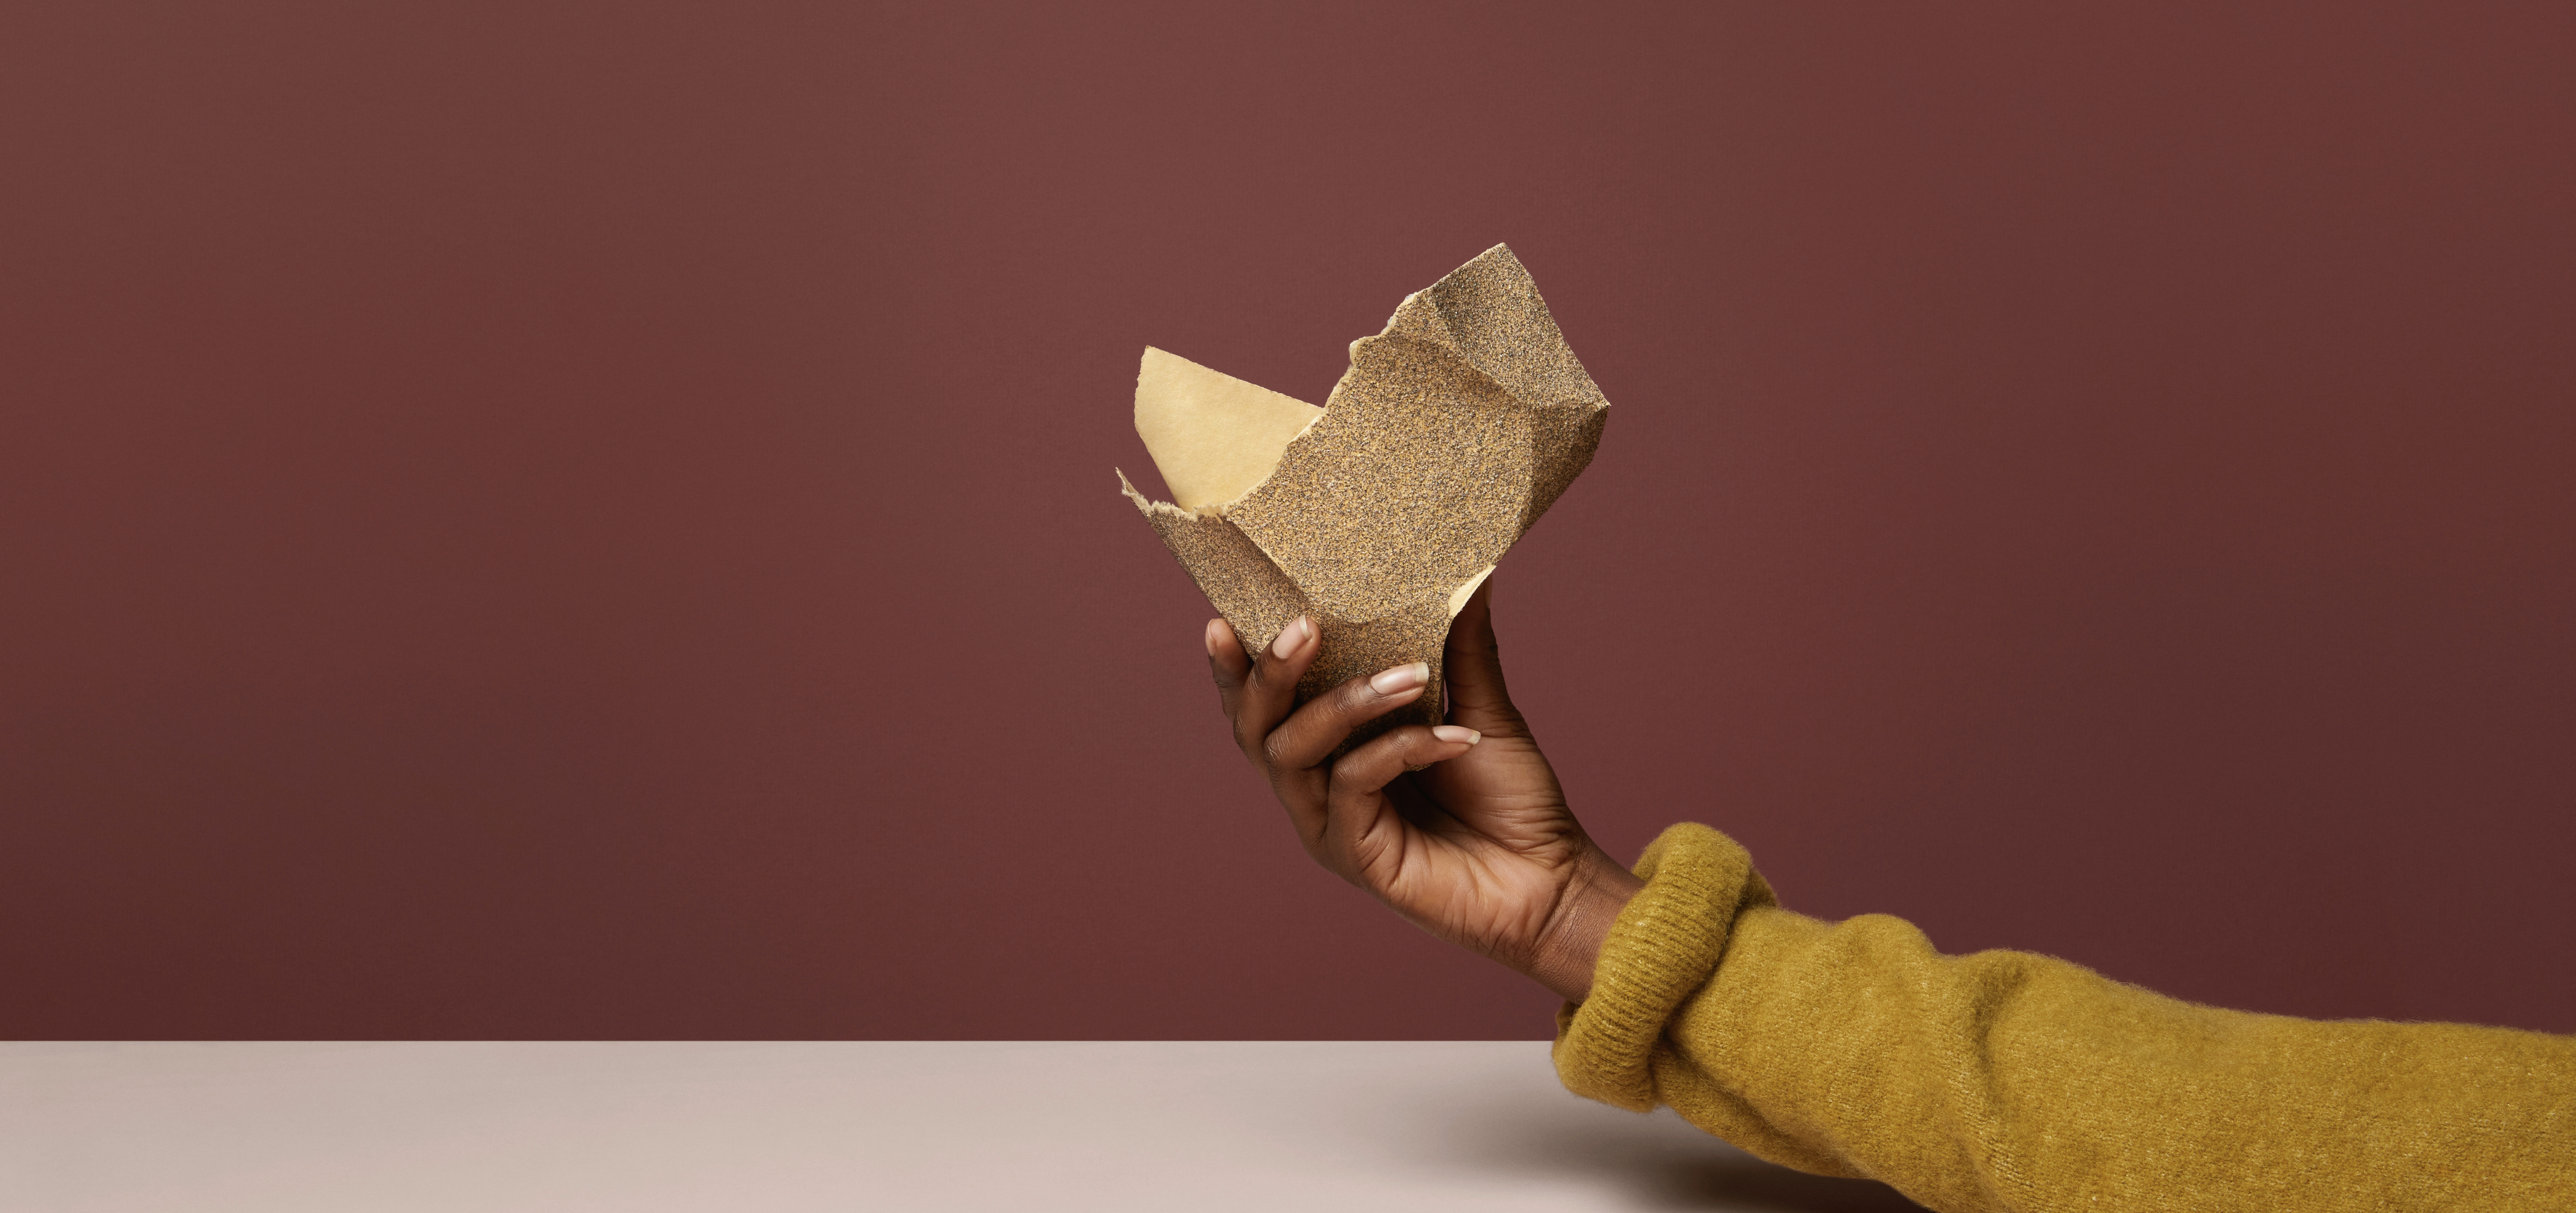 a person's hand, holding itchy sandpaper